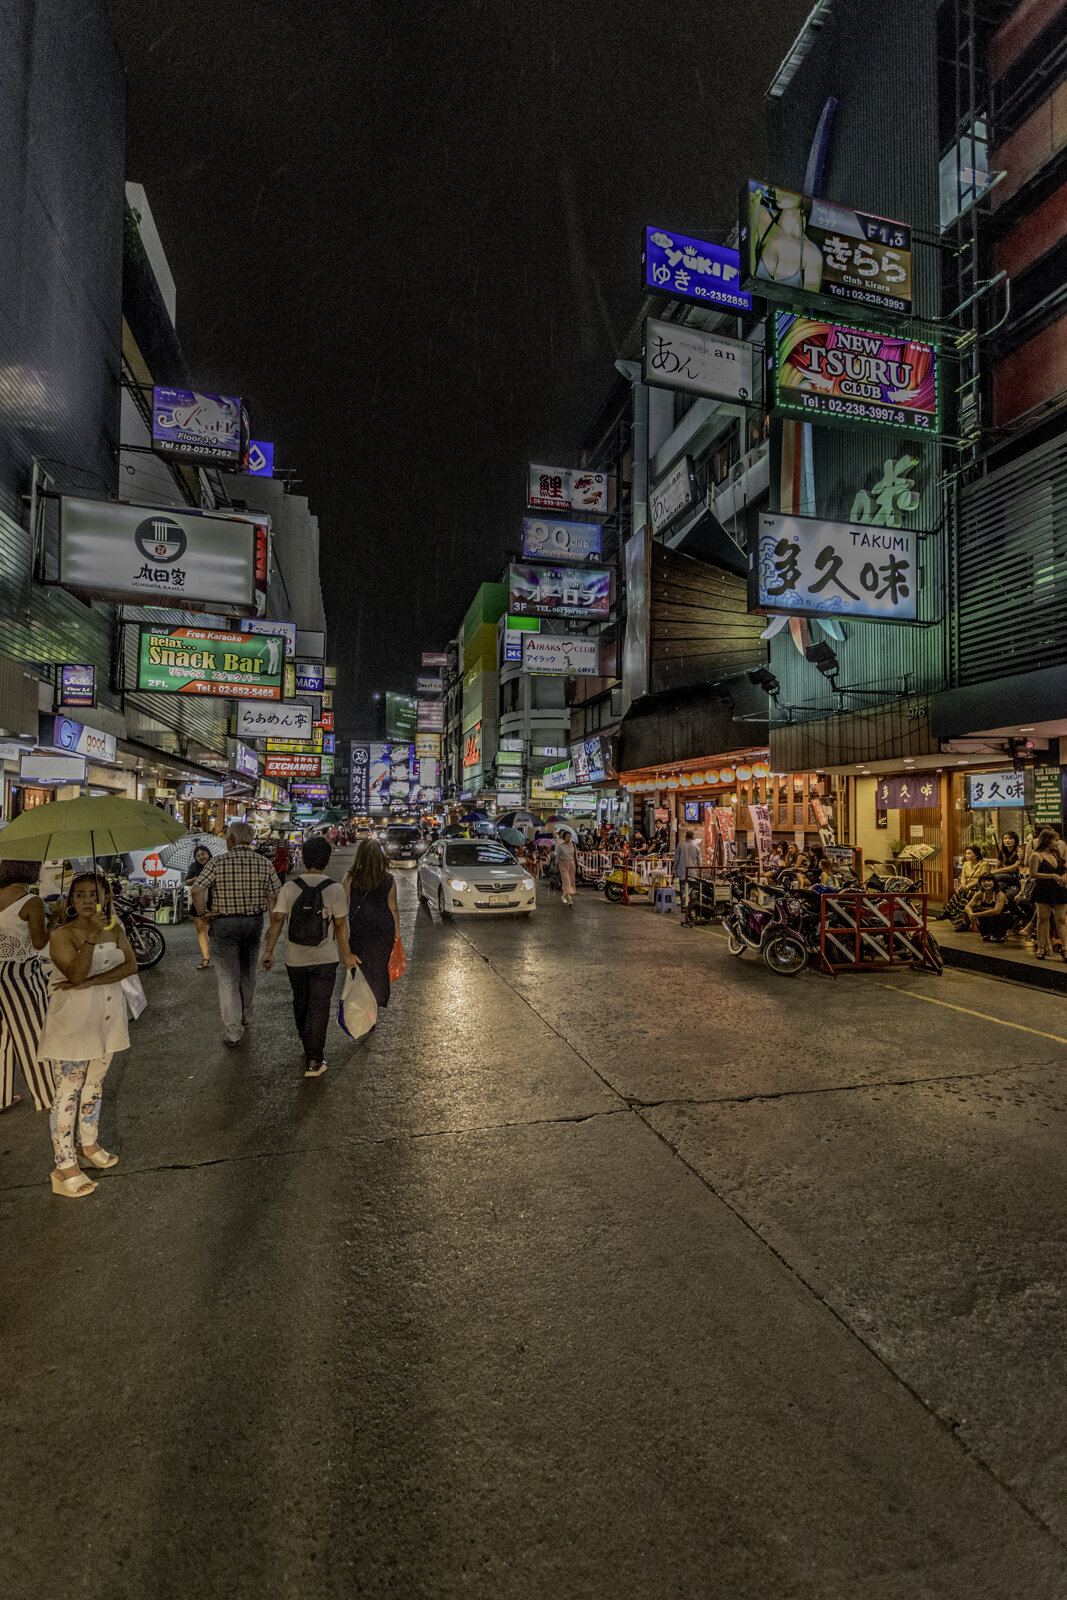 Night life in Bangkok